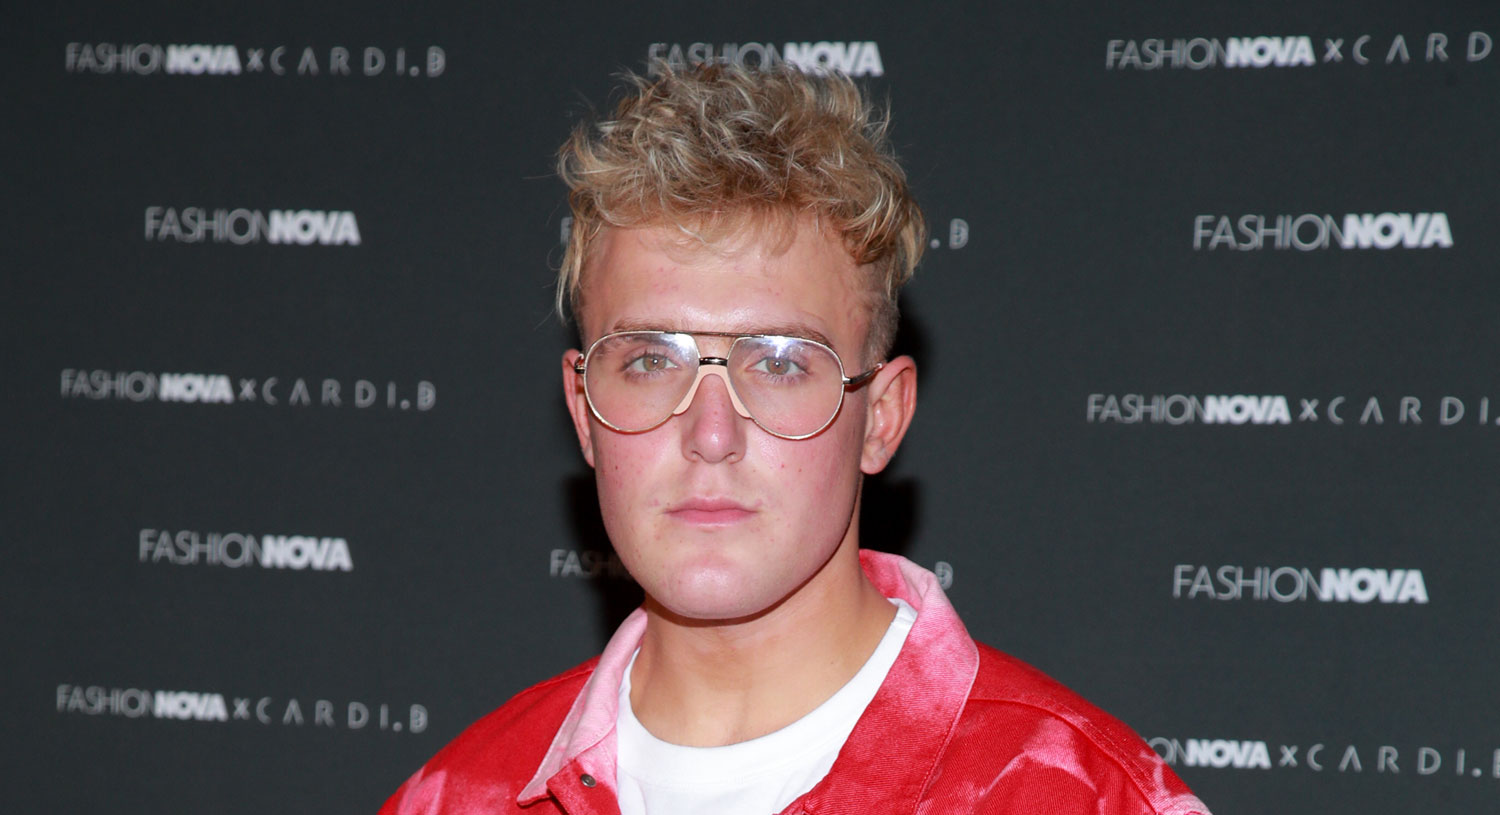 Jake Paul Is Addressing Tana Mongeau Relationship In New Team 10 Reality Show